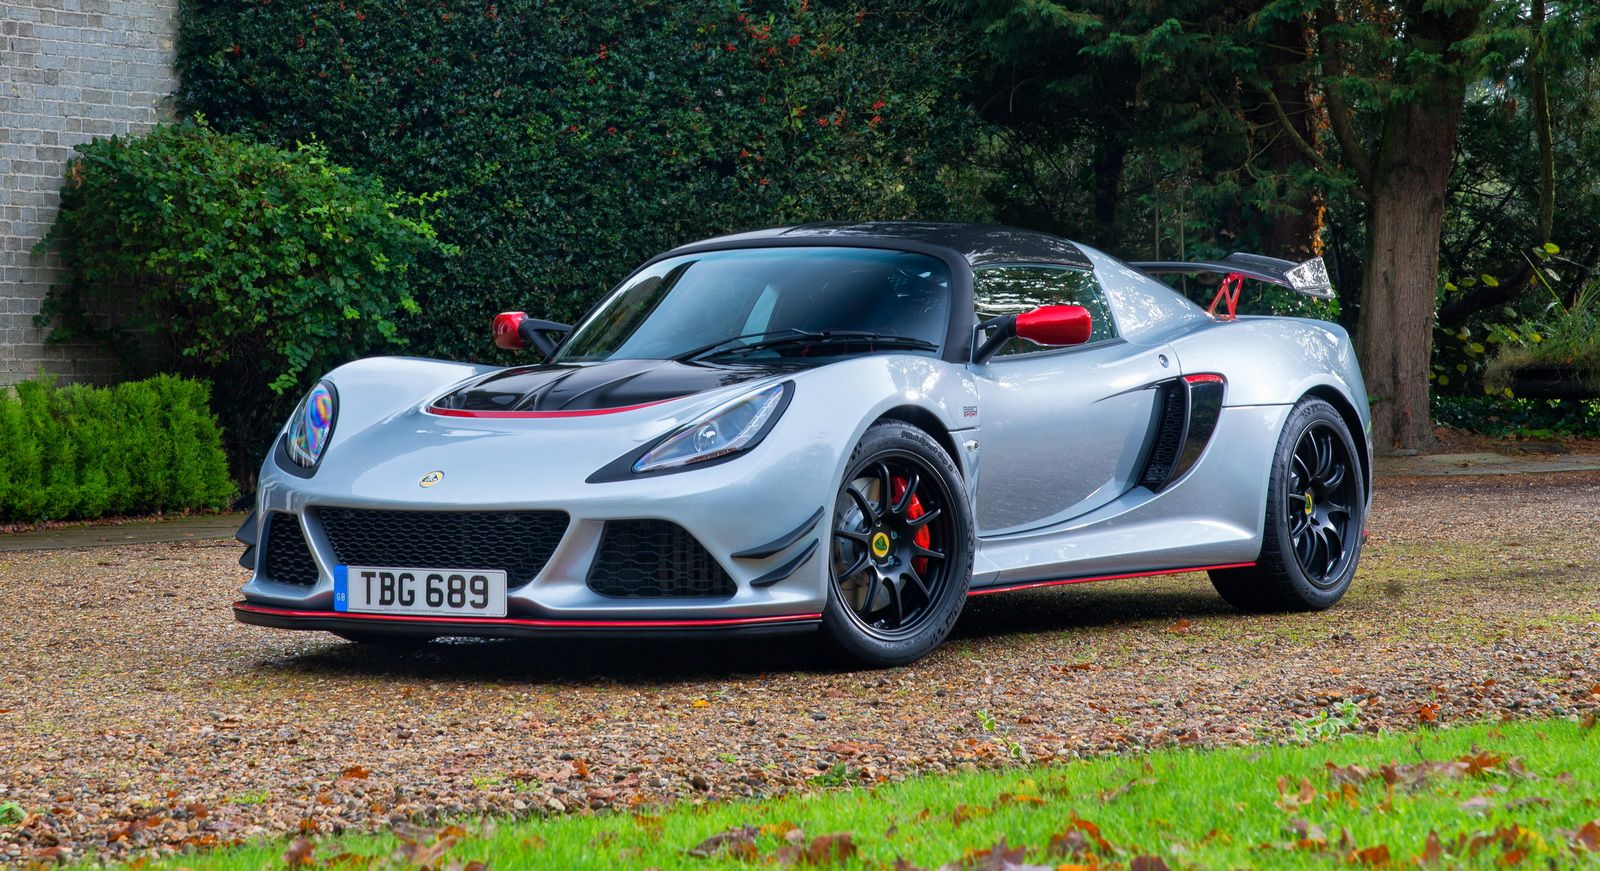 The new lotus exige sport 380 represents the lightest most aggressive version of the british mid engined sports car to date